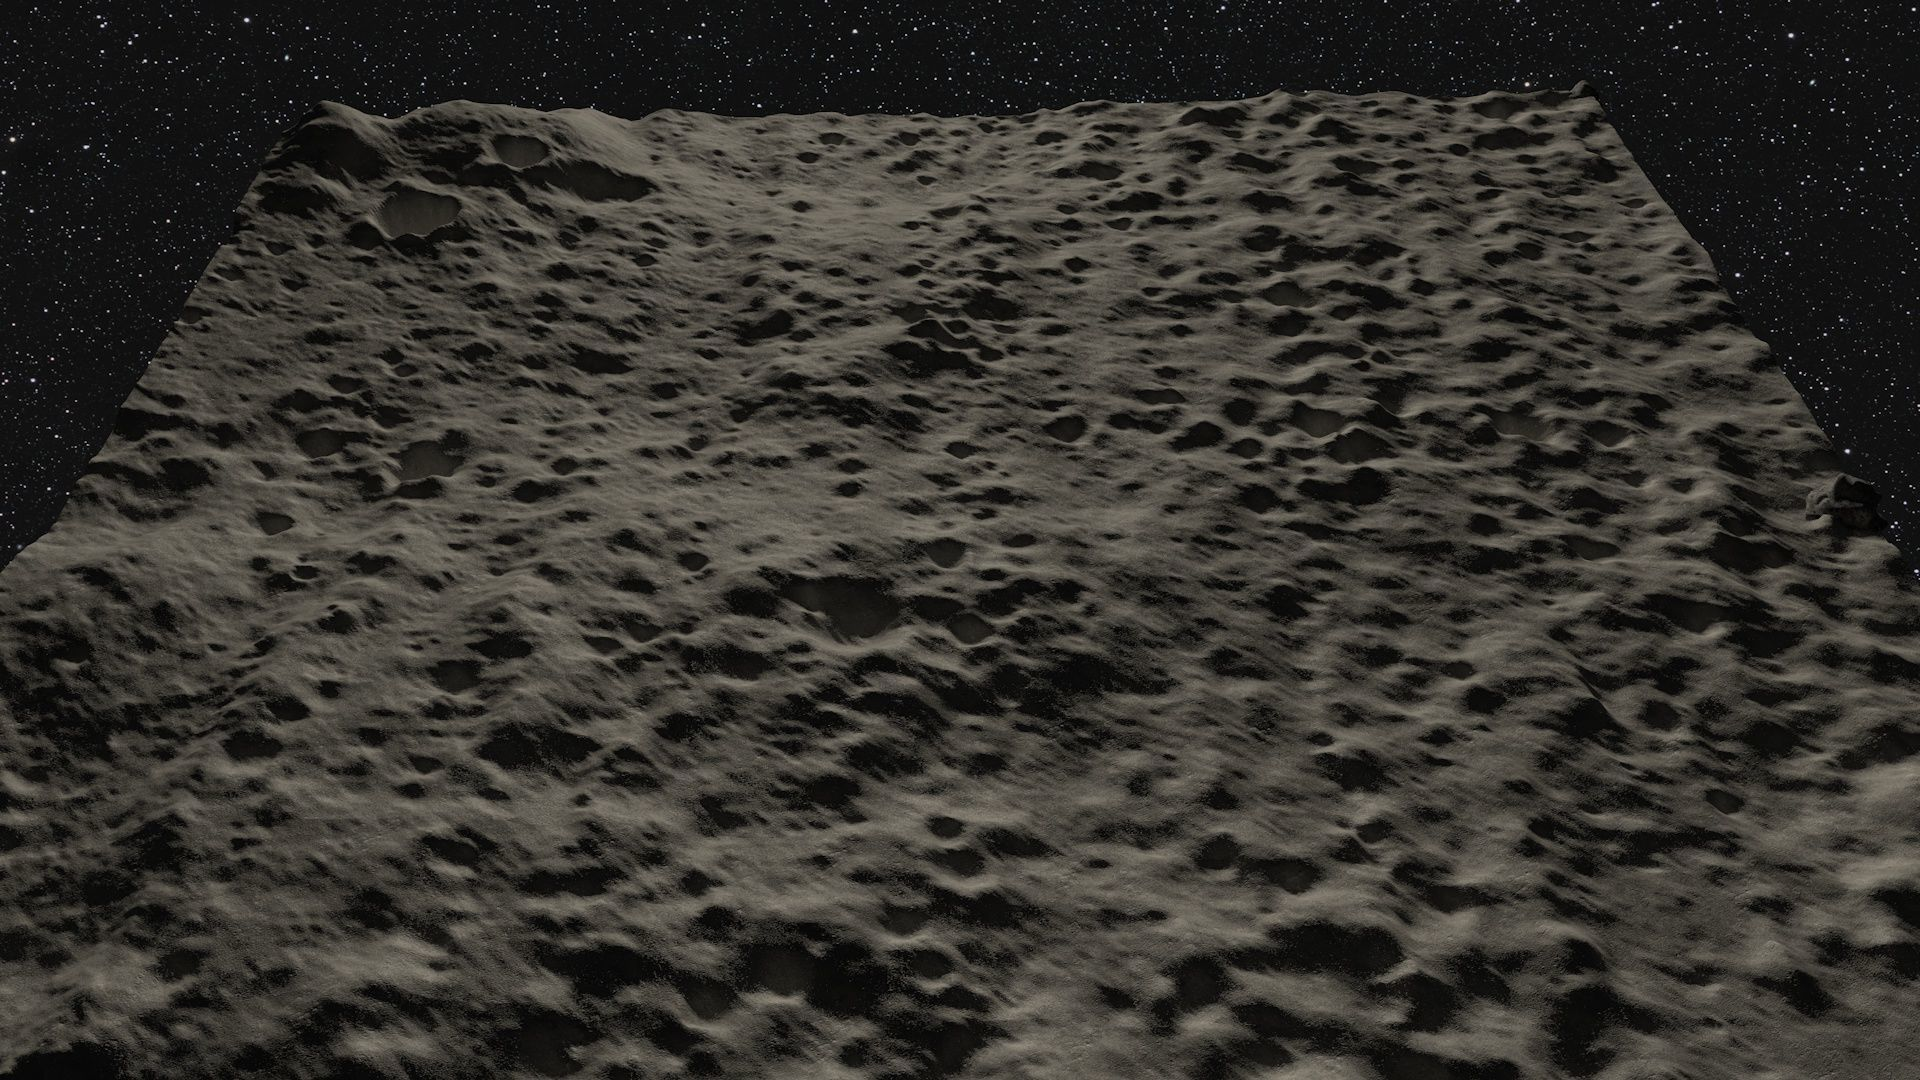 Realistic Moon Surface